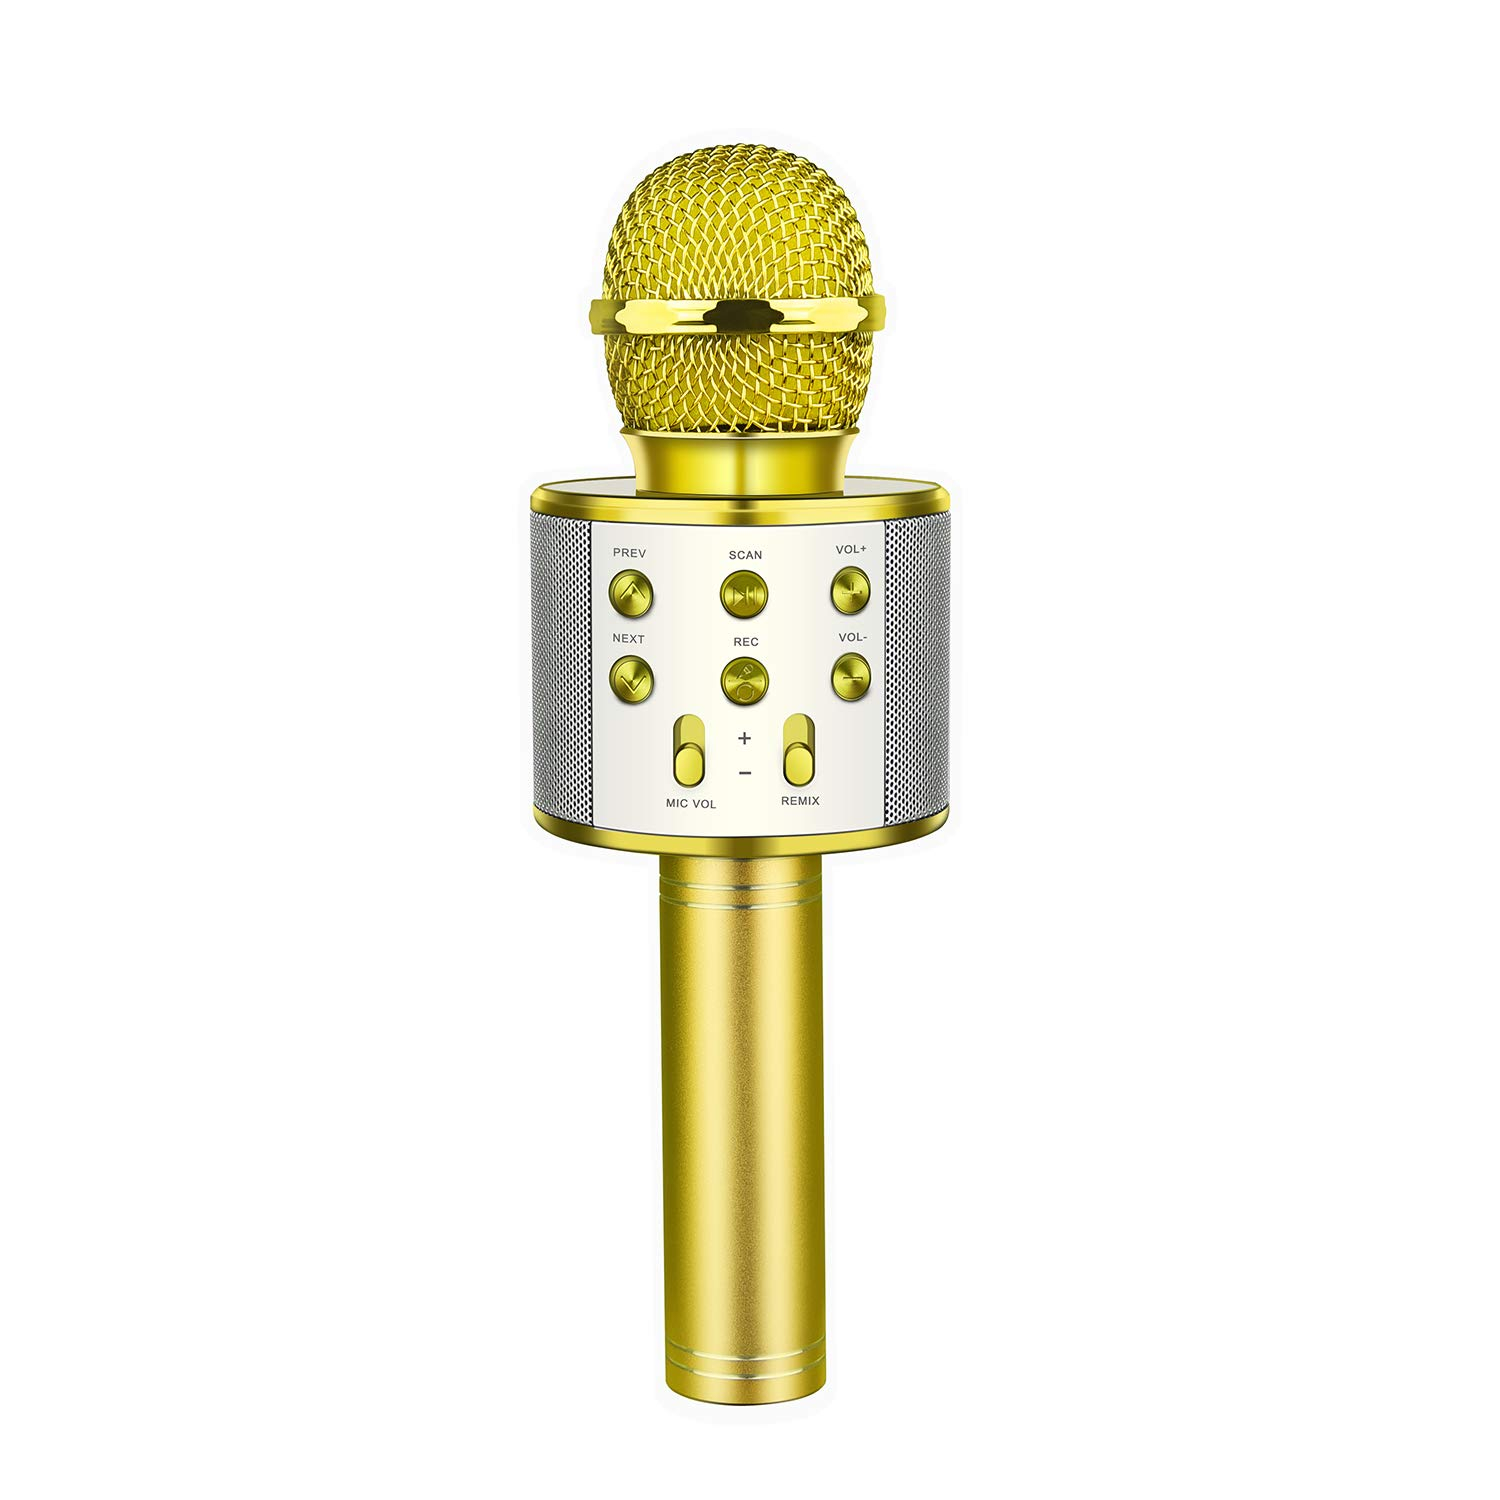 Best Gifts for Girls Age 5-14, Karaoke Microphone Bluetooth Wireless for Kids Adults Popular Fun Toys for 5-15 Year Old Boys Girls Gold OM02 by OPO